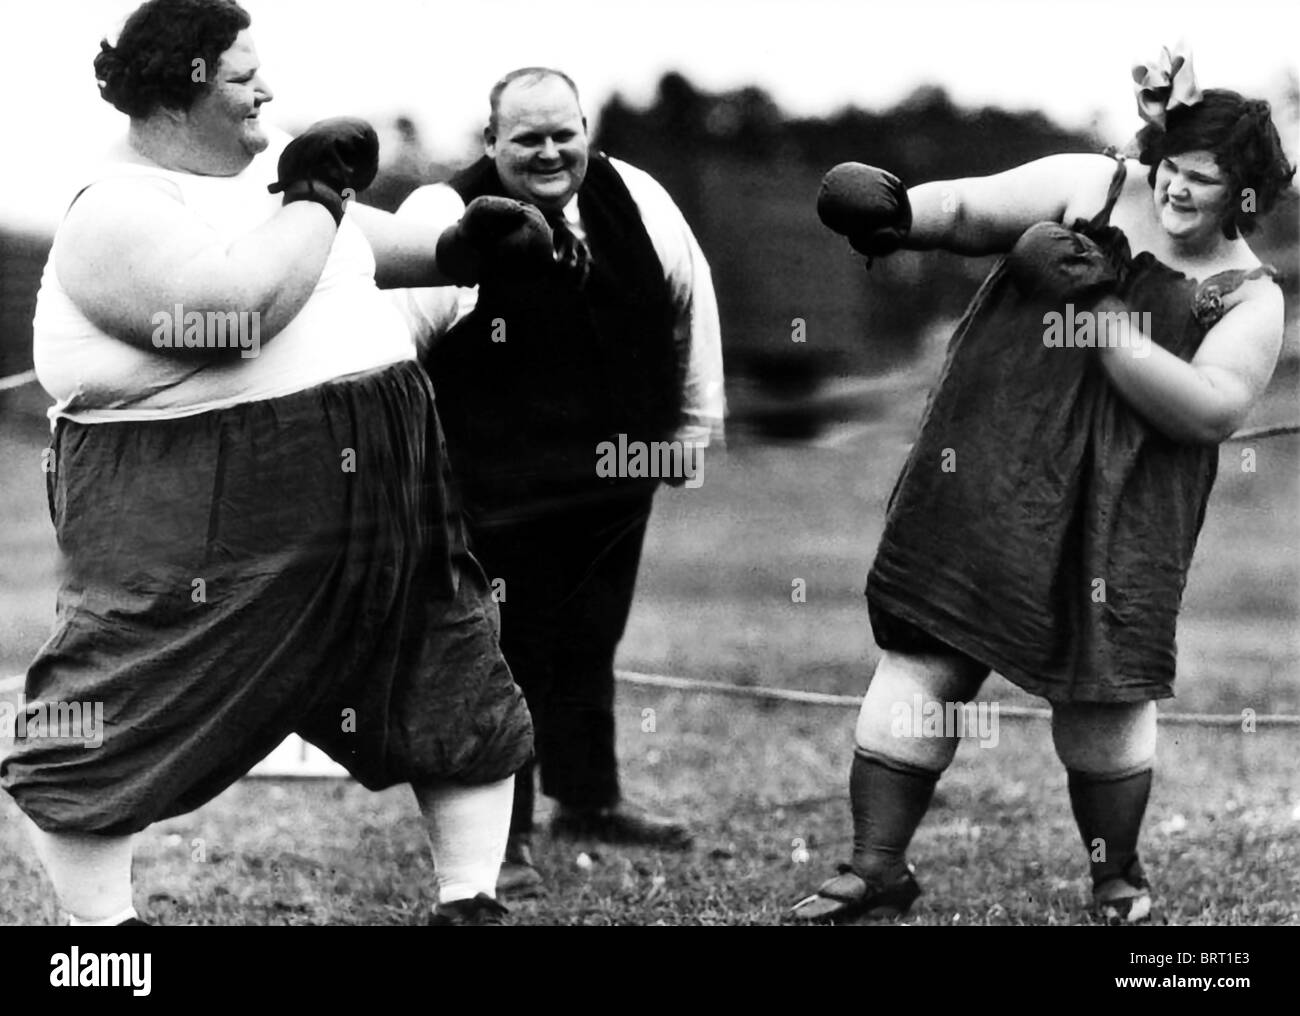 fat women boxing, historic photograph, around 1910 stock photo